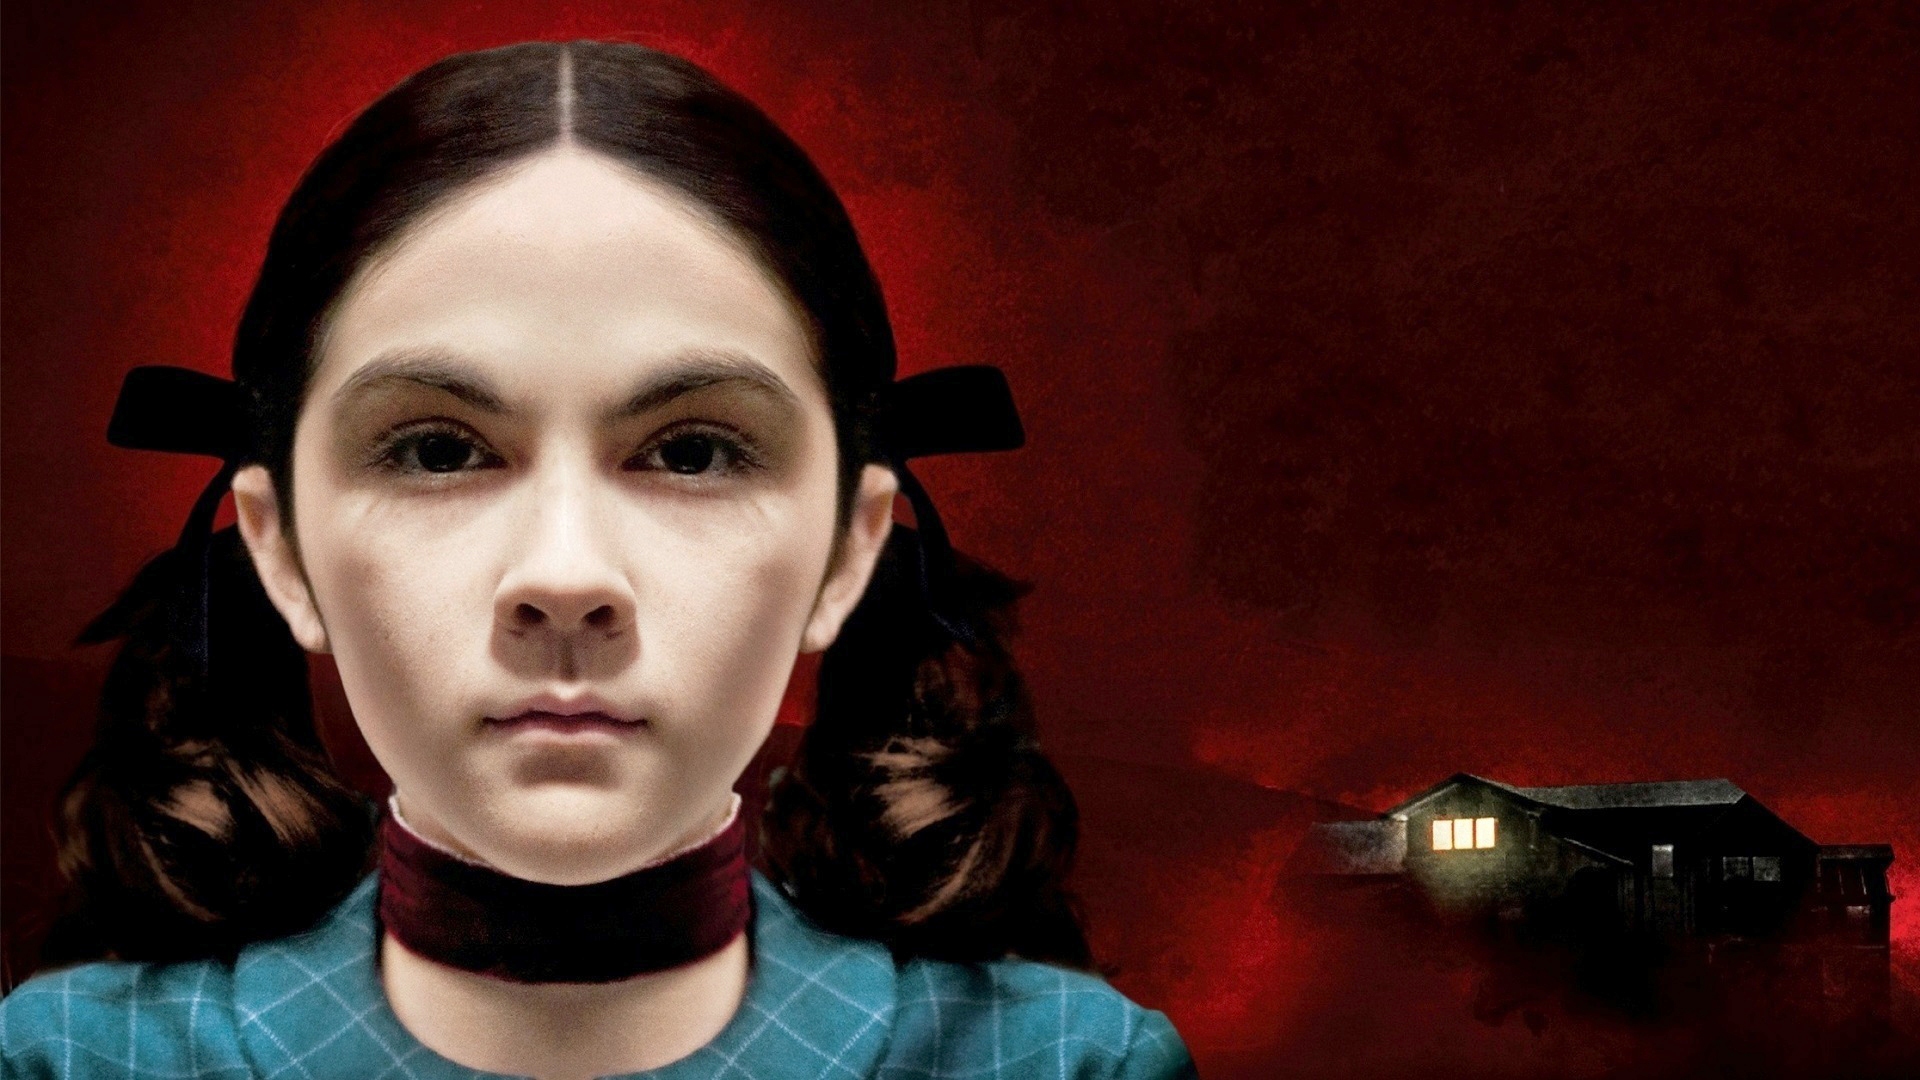 Orphan HD Wallpaper Background Image 1920x1080 ID808717 1920x1080